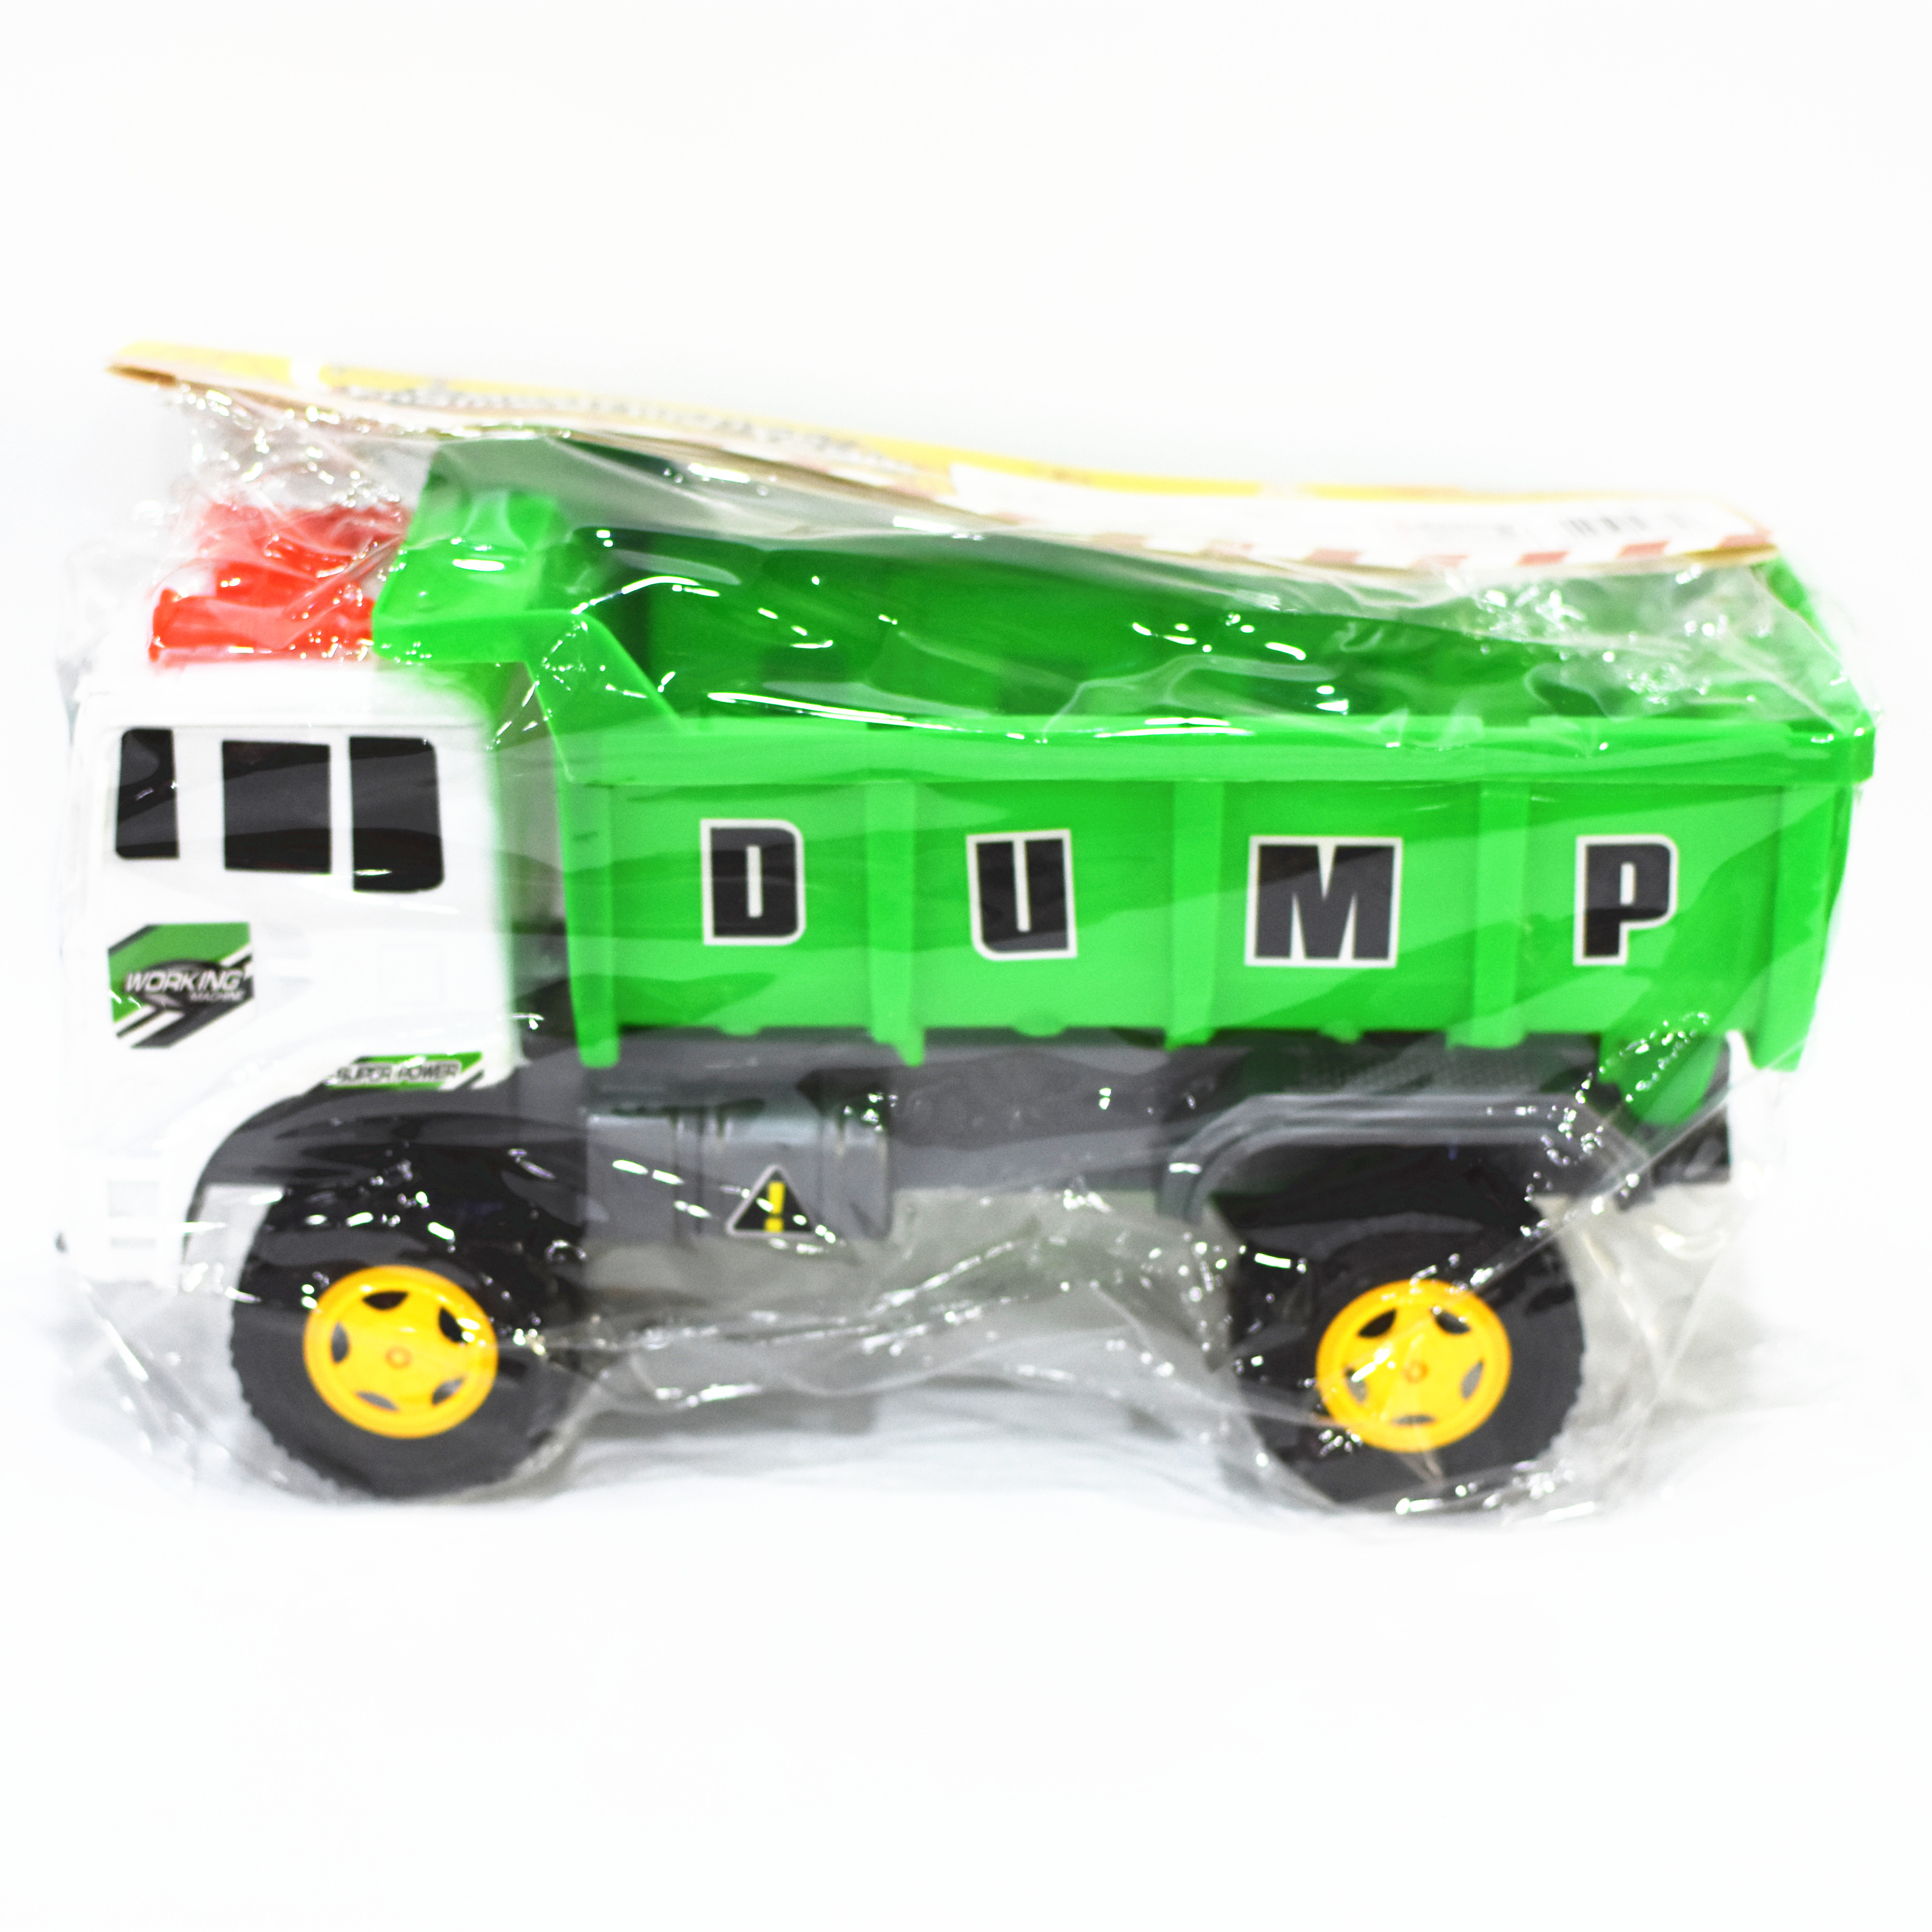 FREE WHEEL TRUCK TOY LY1821